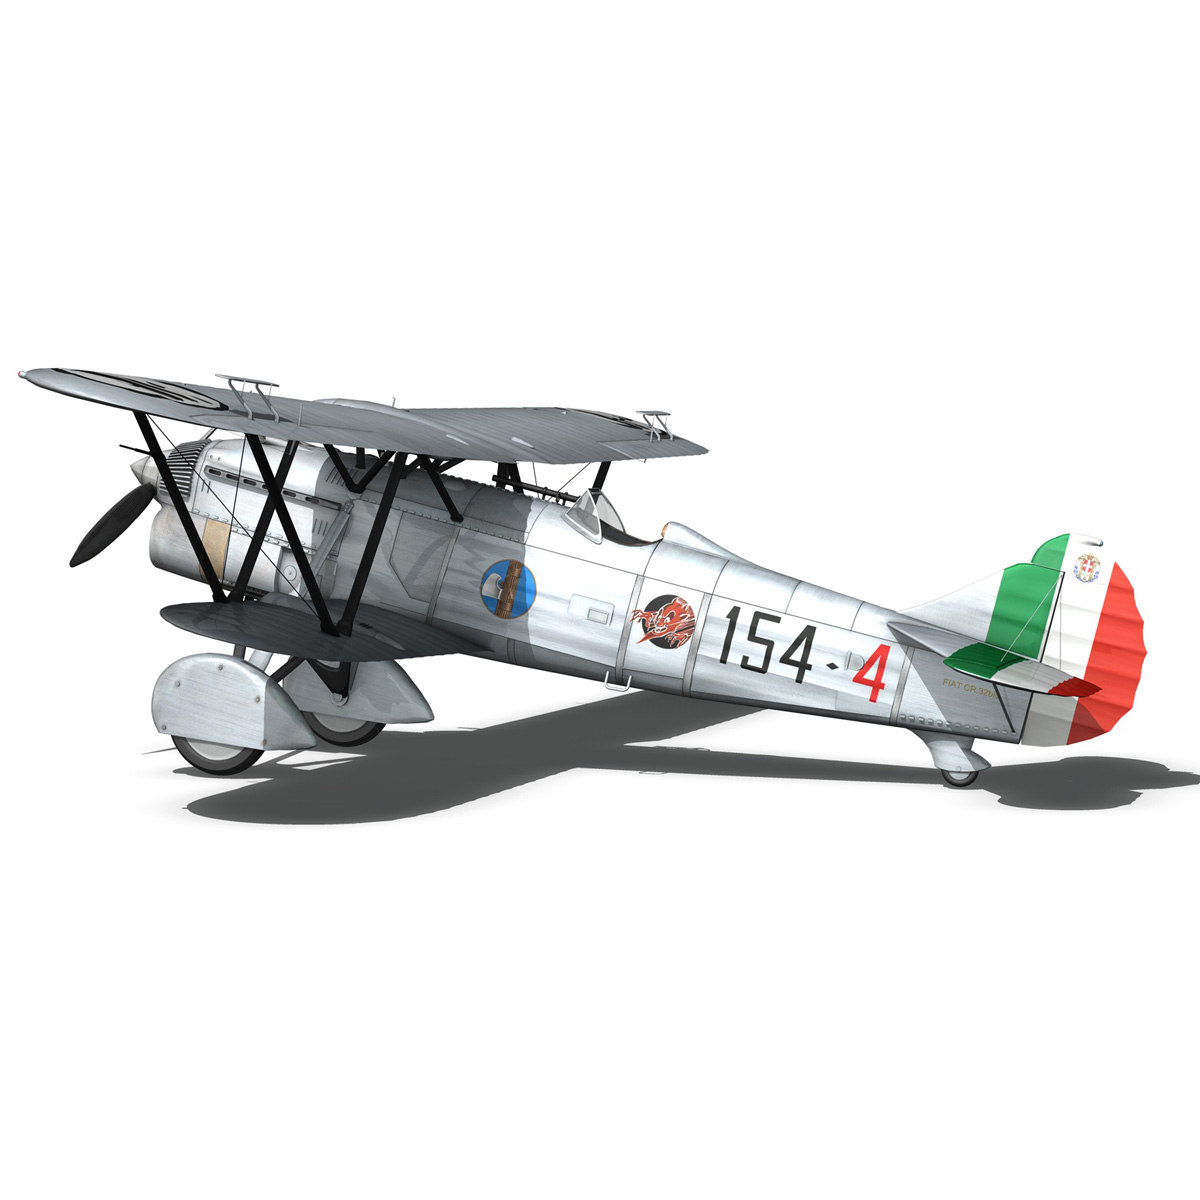 fiat cr.32 – italy airforce – 154 squadriglia 3d model fbx c4d lwo obj 268139